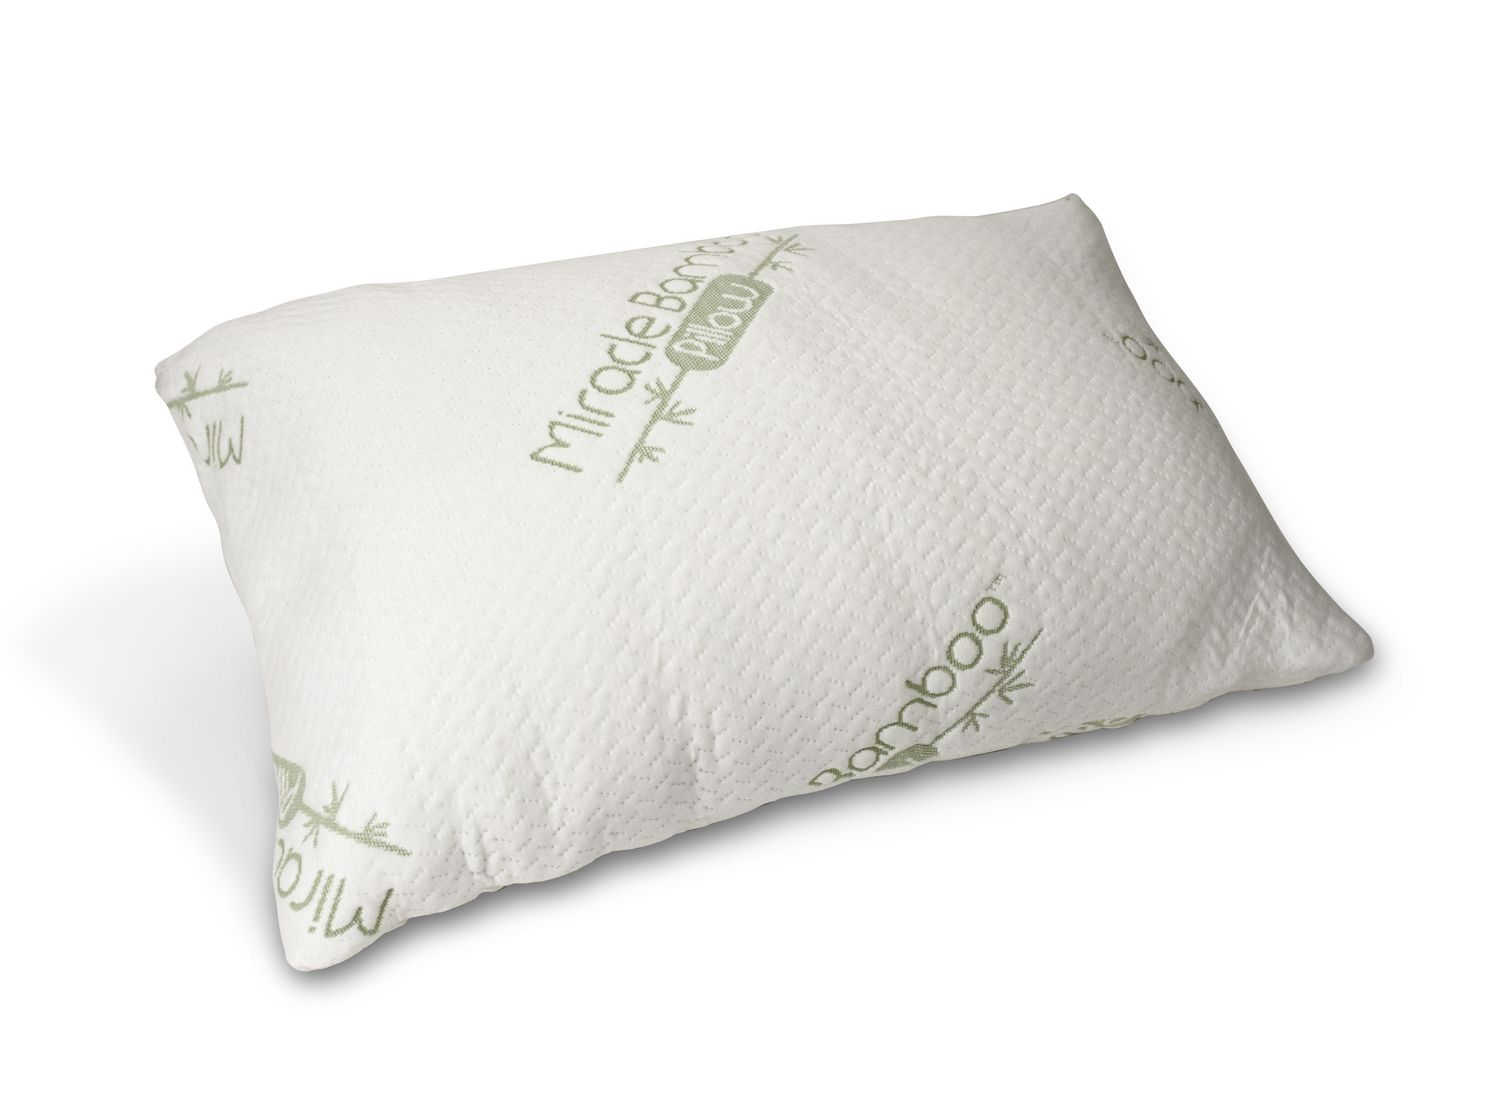 abdf full rest pillows p bamboo the collections home body best pillow